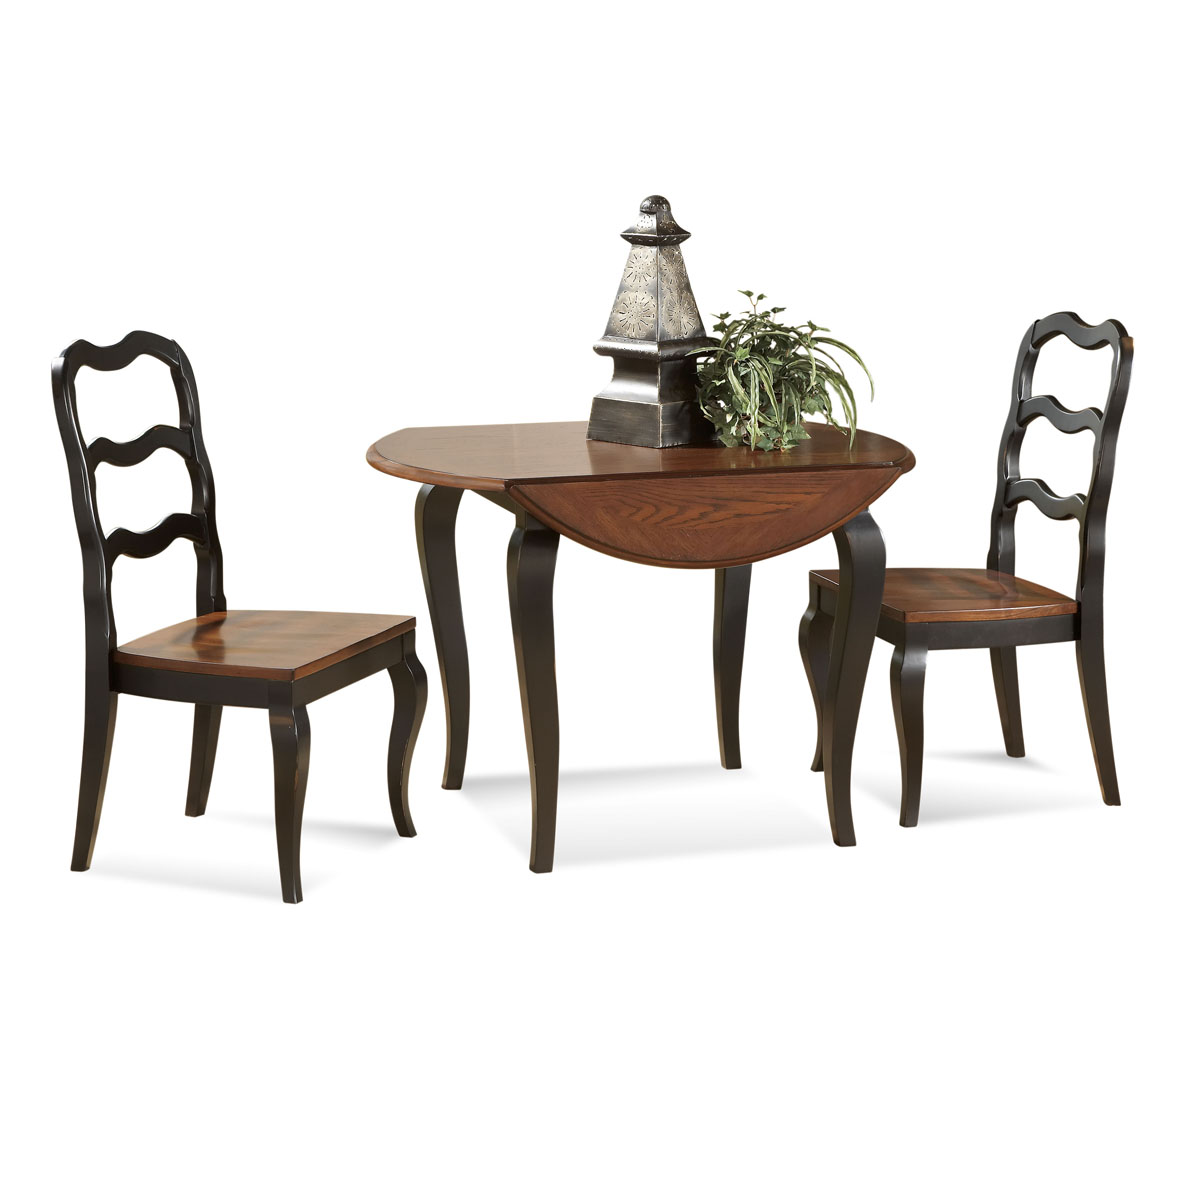 Dining Table With Two Chairs: 5 Styles Of Drop Leaf Dining Table For Small Spaces